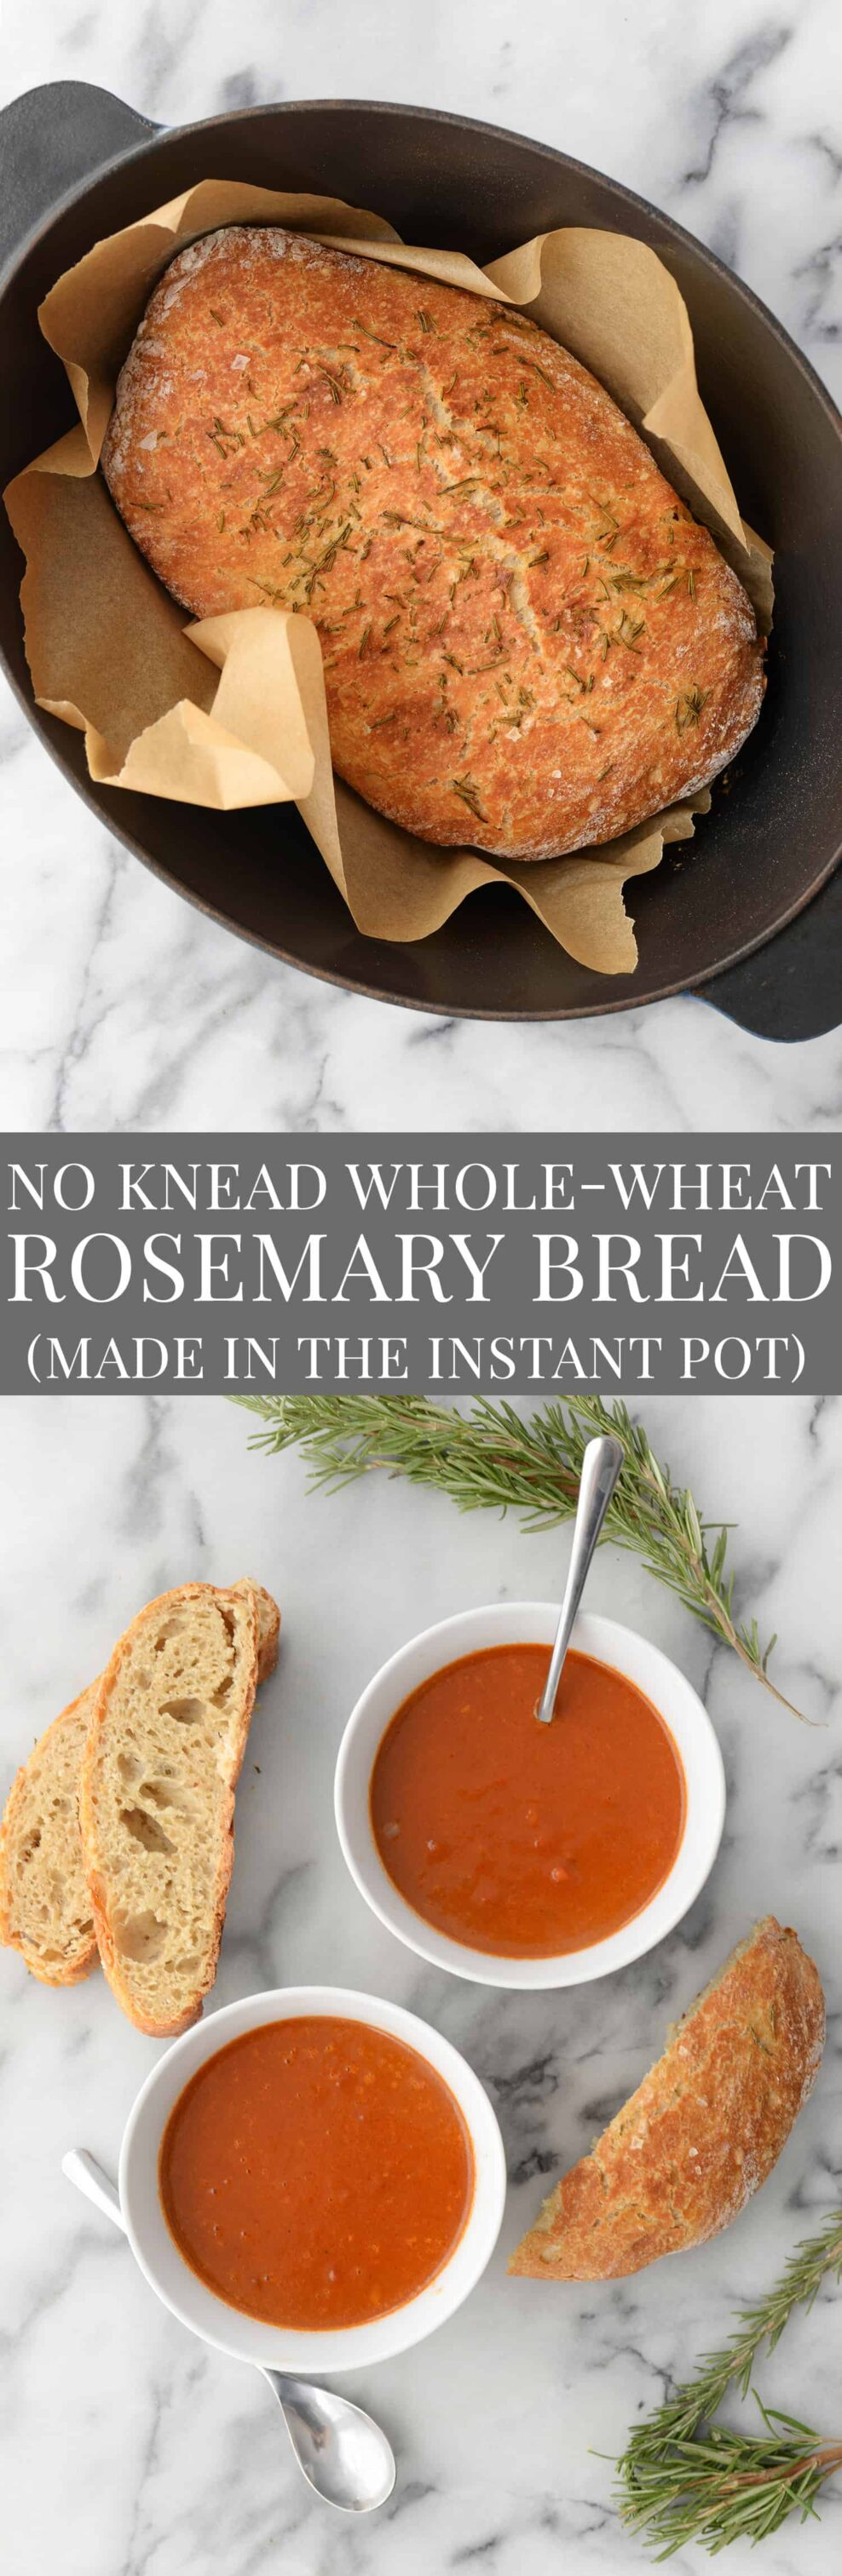 whole wheat bread made in the instant pot